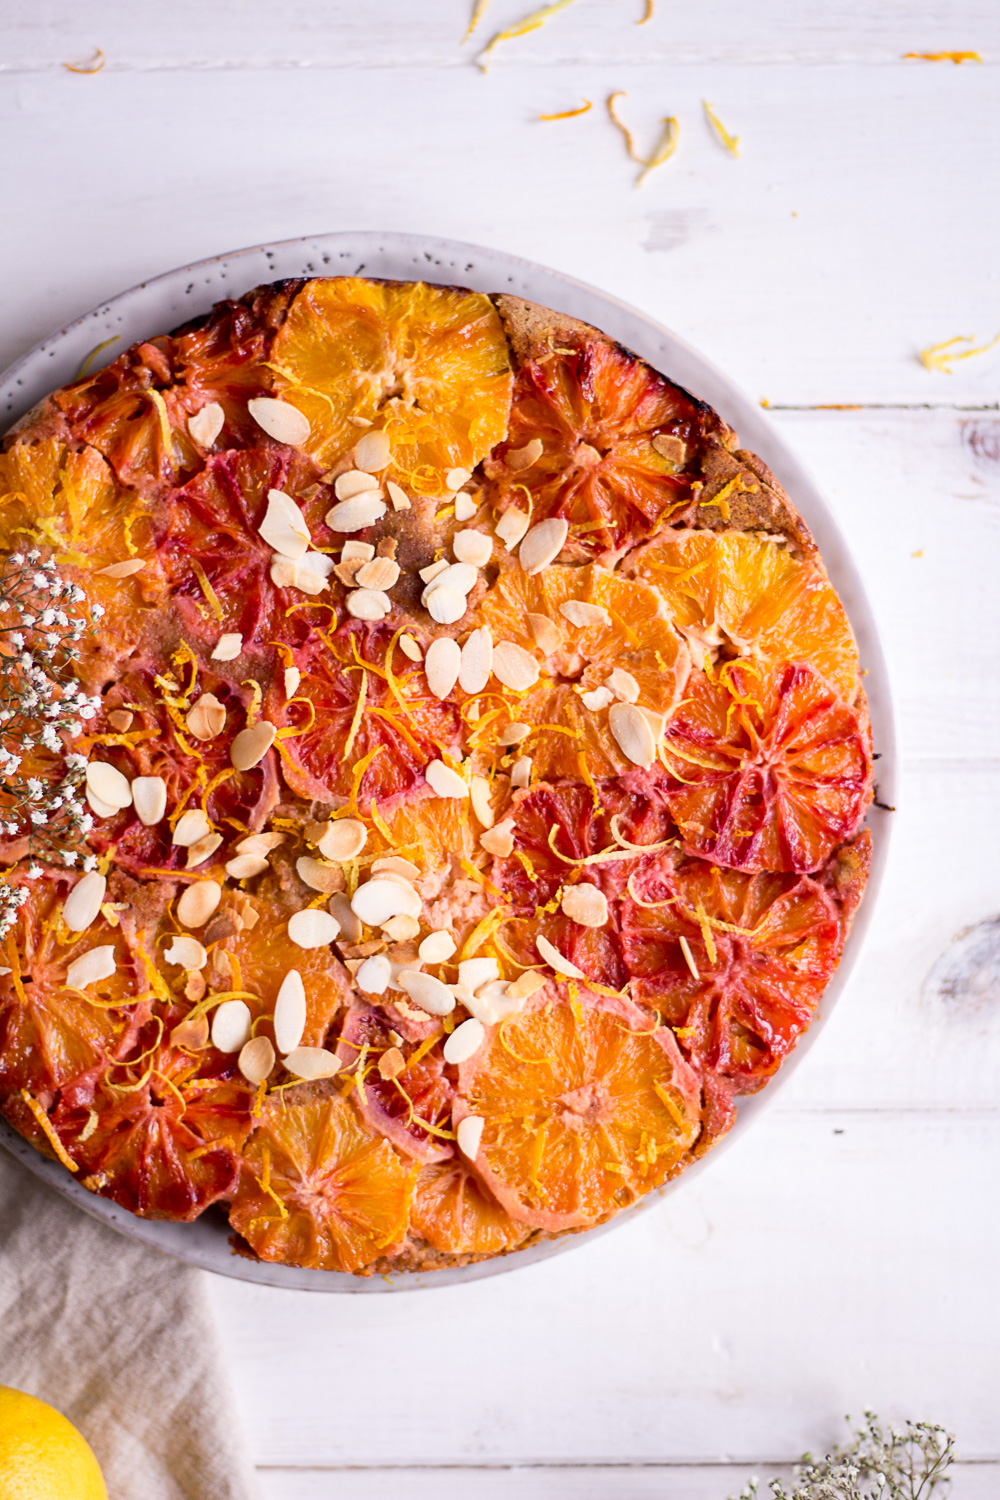 Healthy Lemon & Blood Orange Upside Down Cake